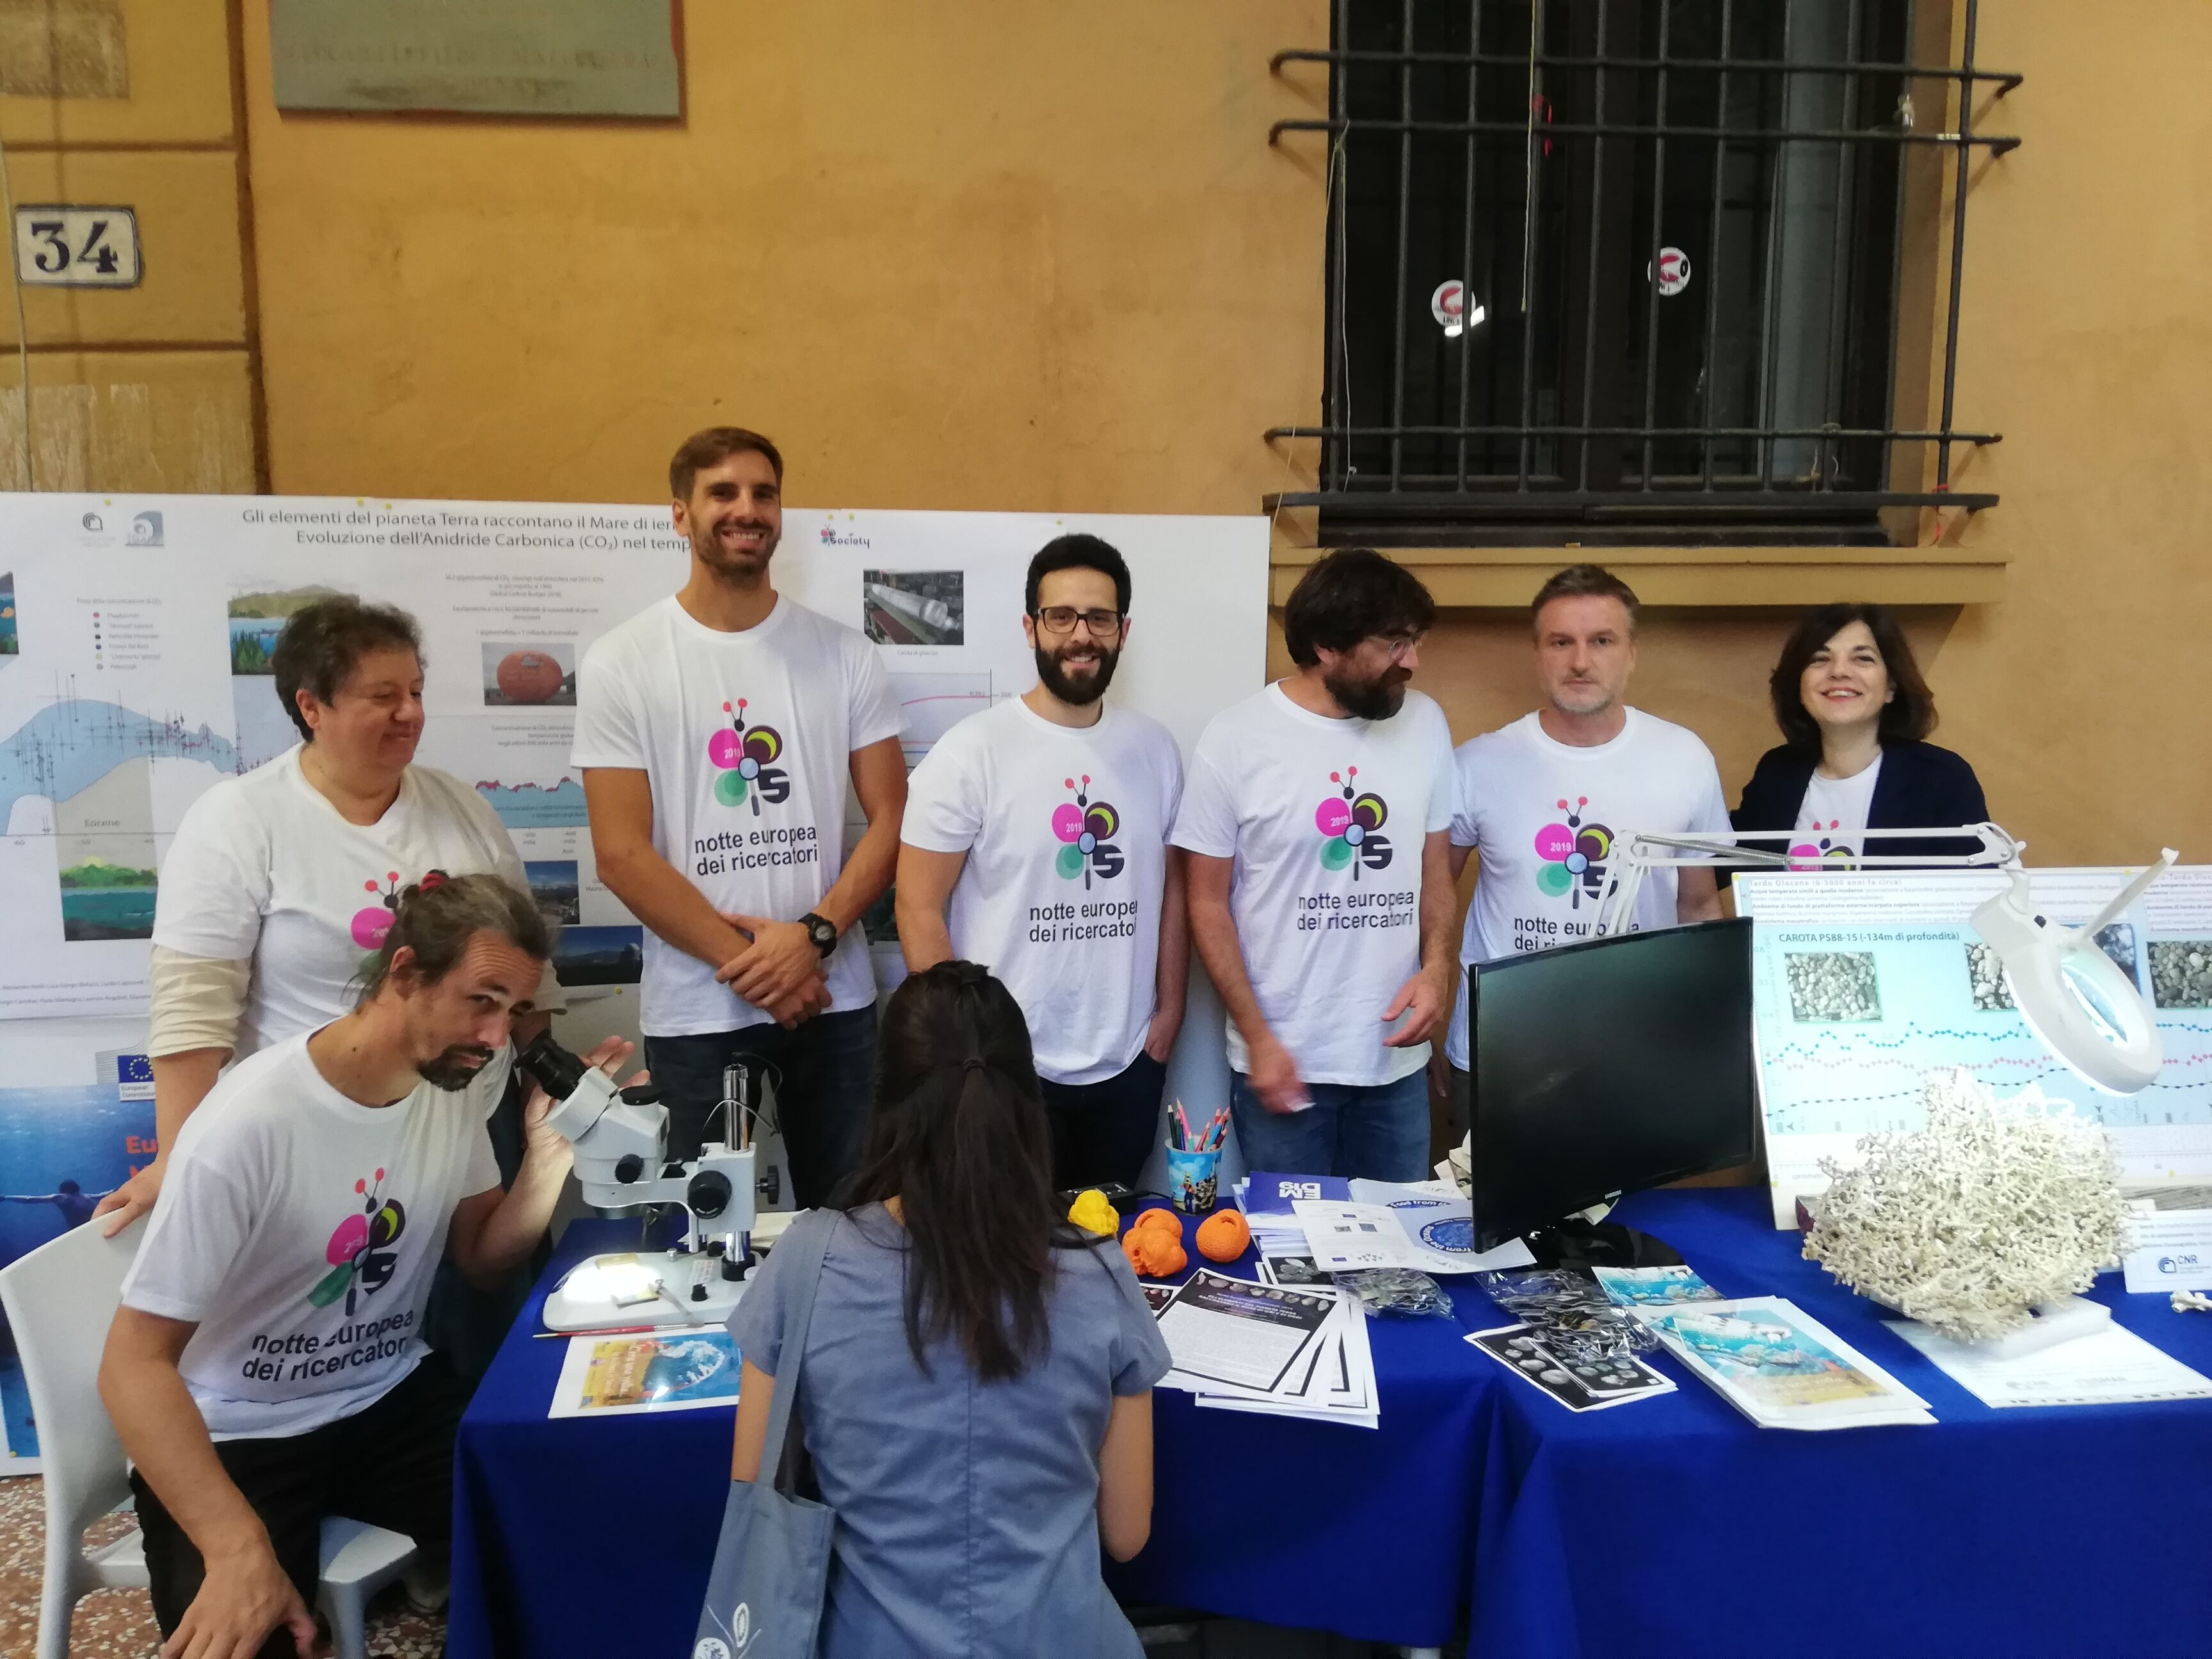 ISMAR-CNR research group participating in the European Researchers' Night 2019